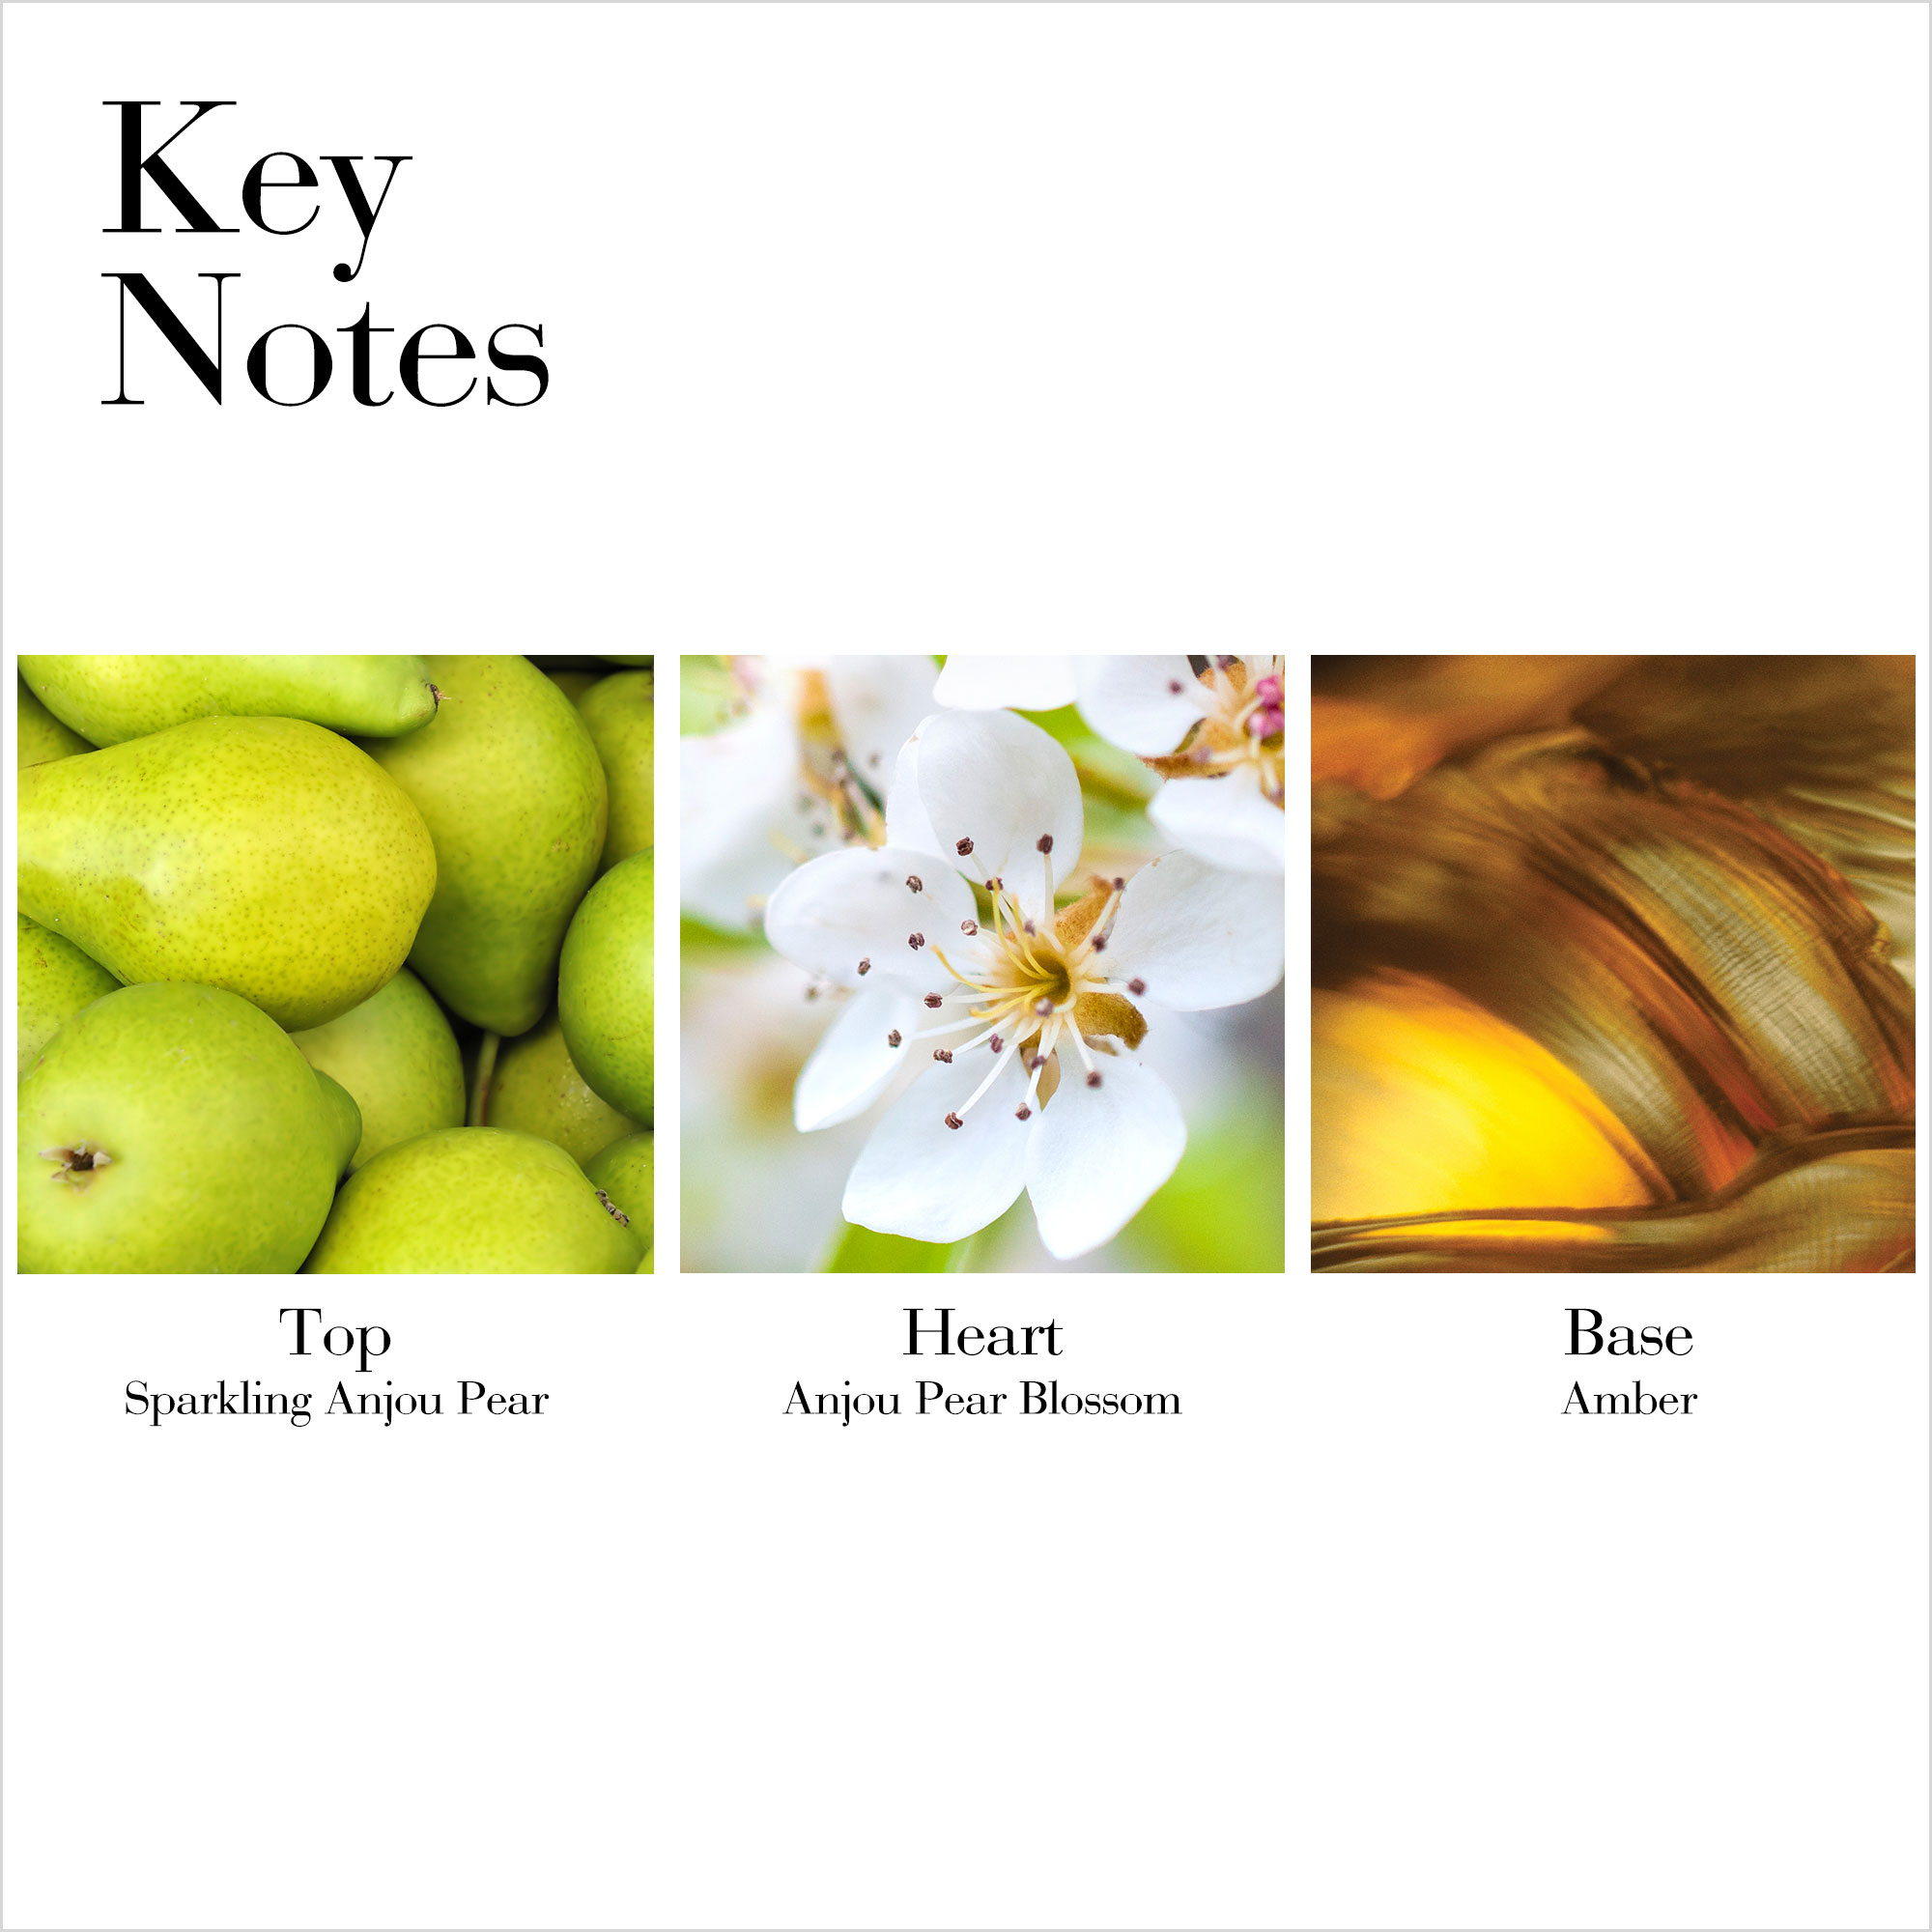 Key Notes- Top Sparkling Anjou Pear, Heart Anjou Pear Blossom, Base Amber